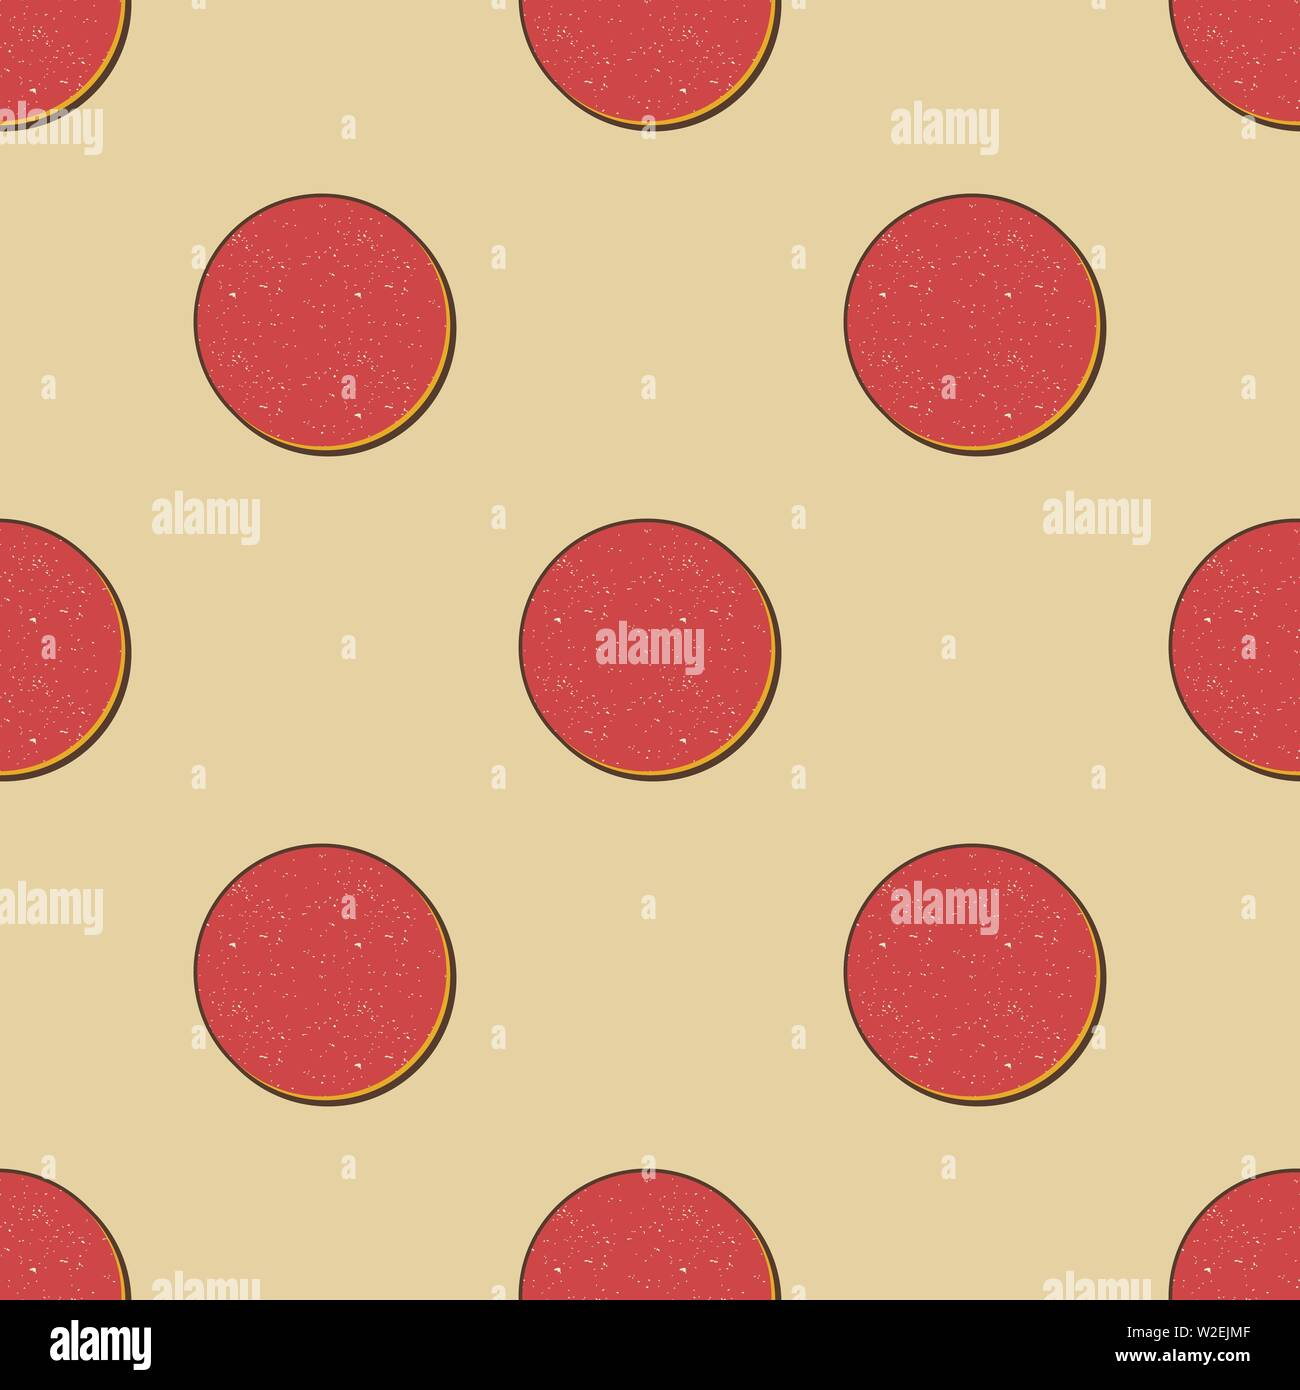 Retro dots pattern  Abstract geometric background in 80s